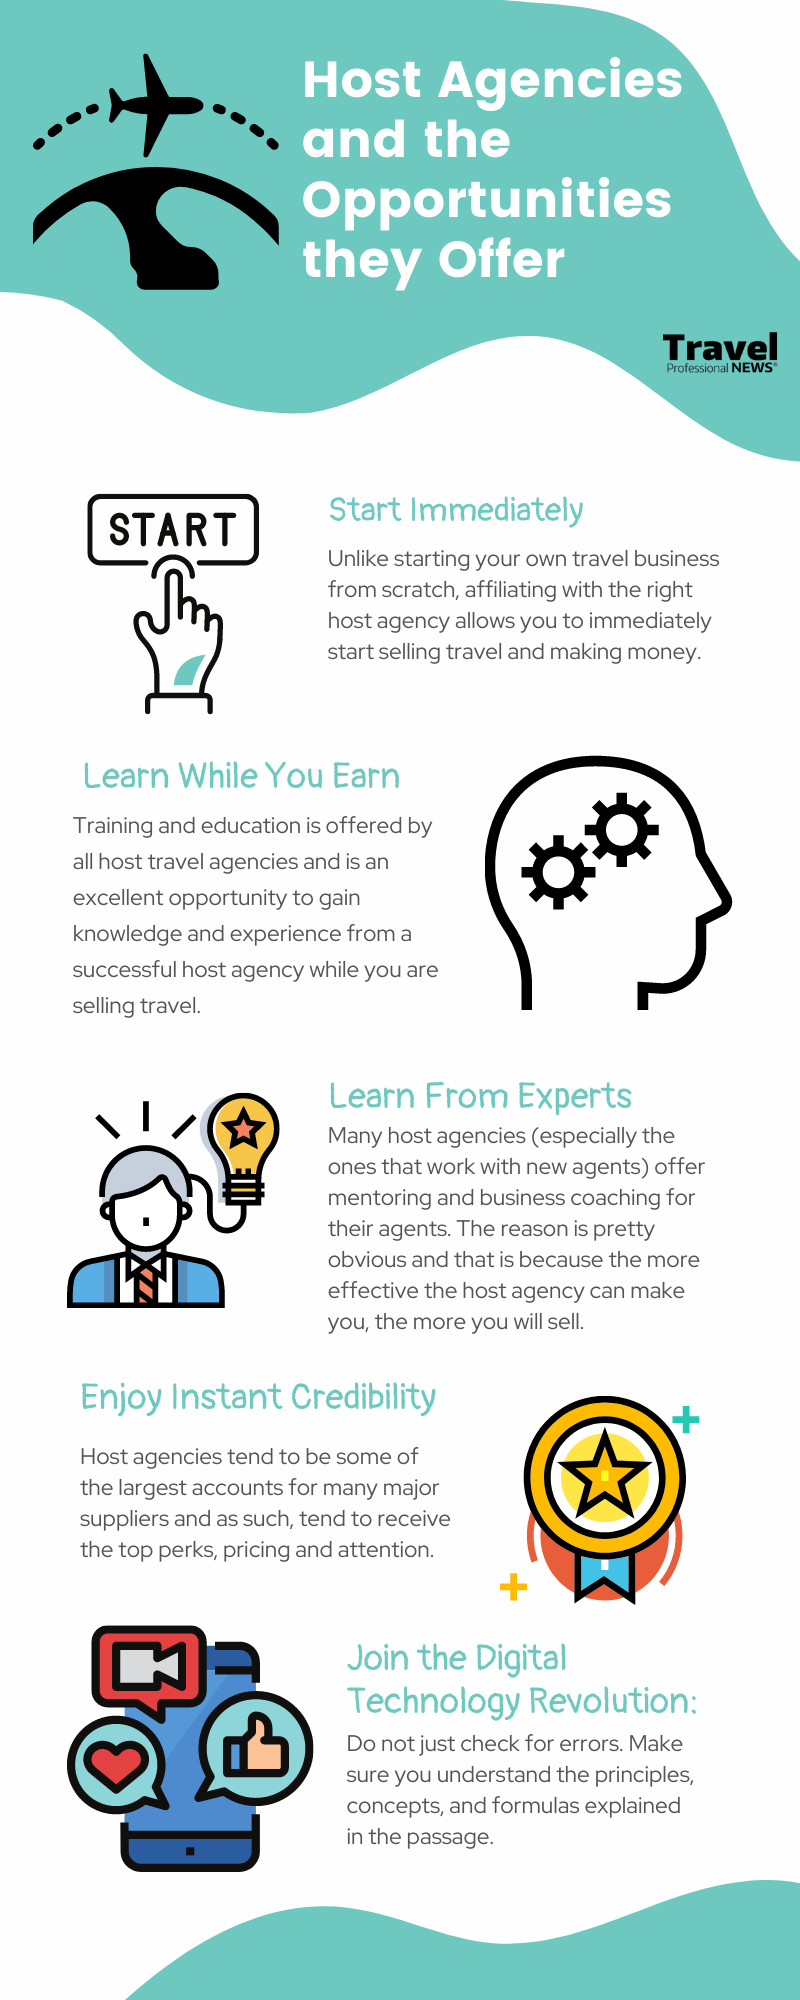 Host Travel Agencies and Opportunities They Offer